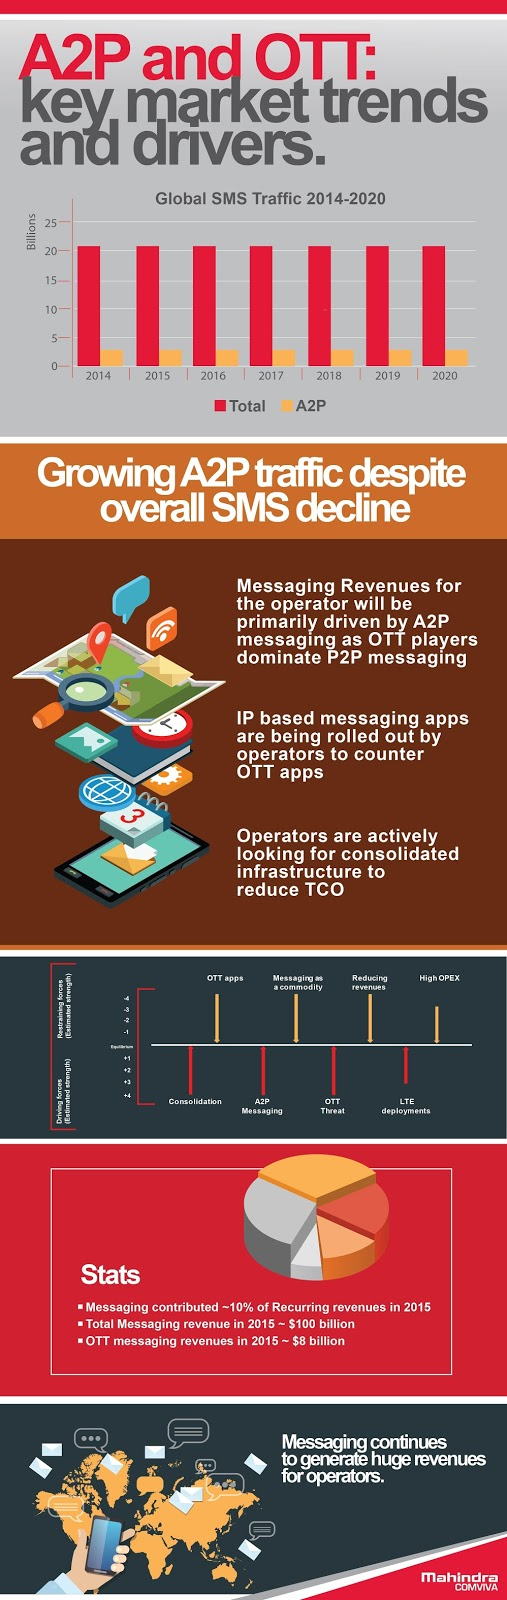 """ A2P messaging to grow to $58billion by 2020"""